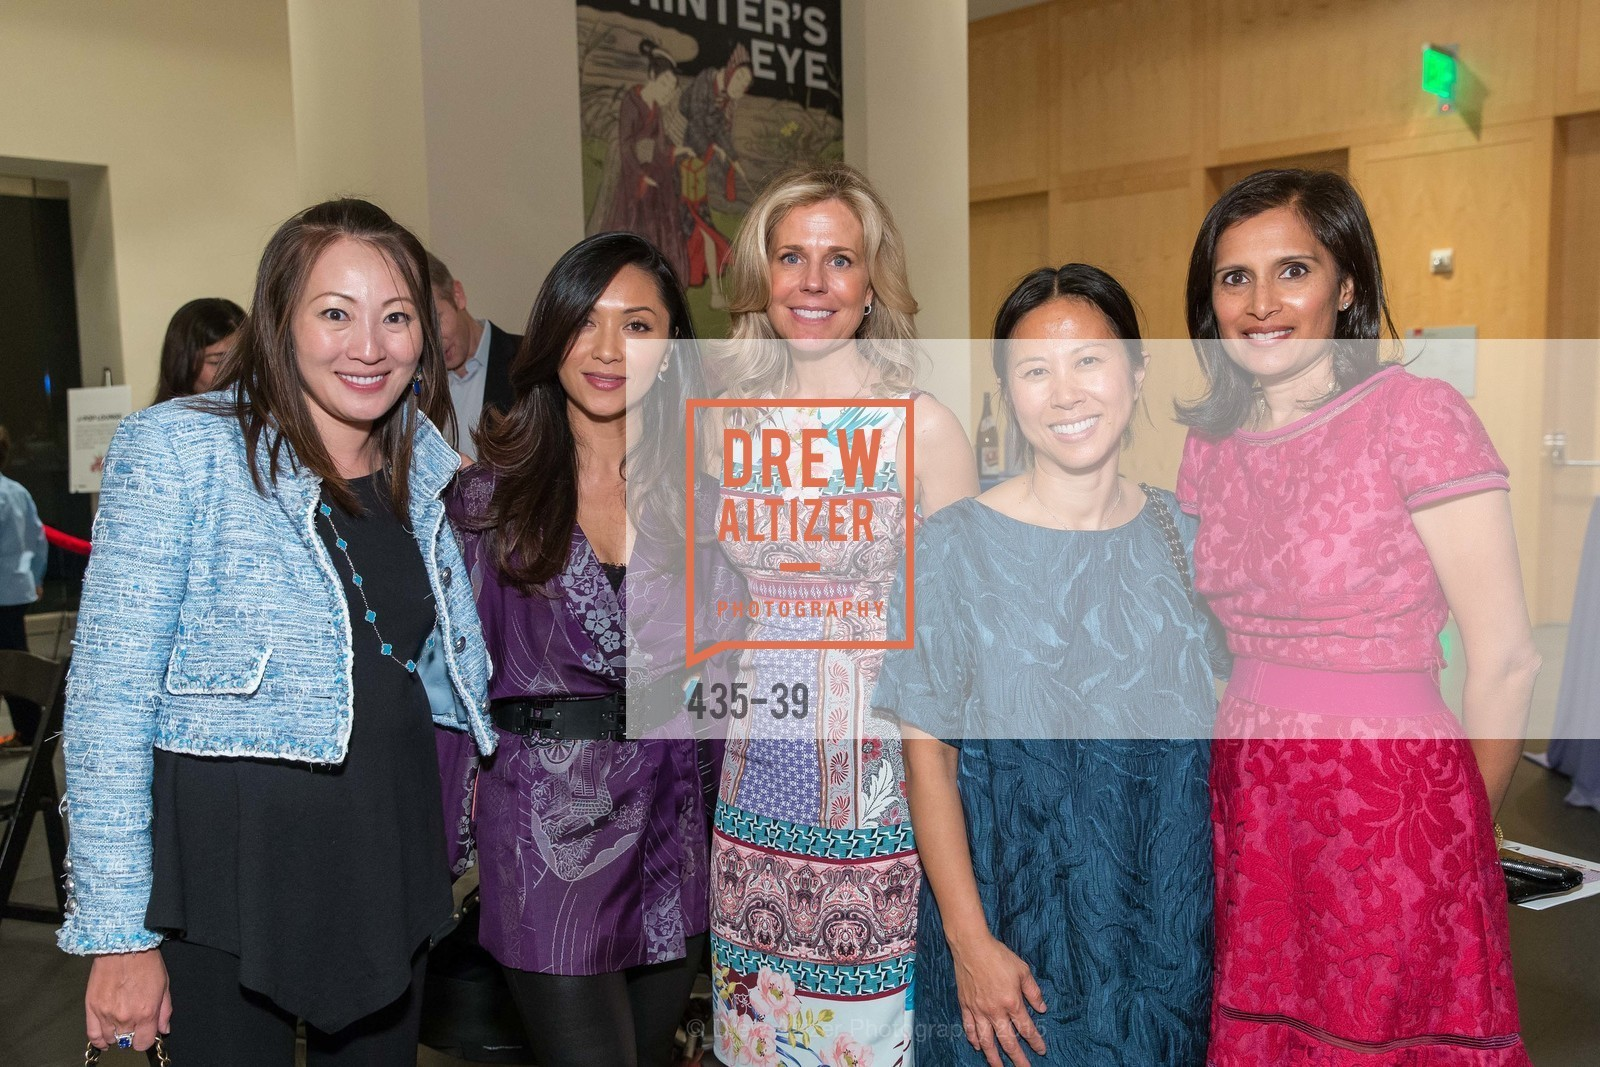 Helina Au, Demi Seguritan, Caroline Low, Linda Lynch, Mona Shah, ASIAN ART MUSEUM Presents Once Upon a Time in Tokyo, Asian Art Museum. 200 Larkin St., San Francisco, April 17th, 2015,Drew Altizer, Drew Altizer Photography, full-service agency, private events, San Francisco photographer, photographer california